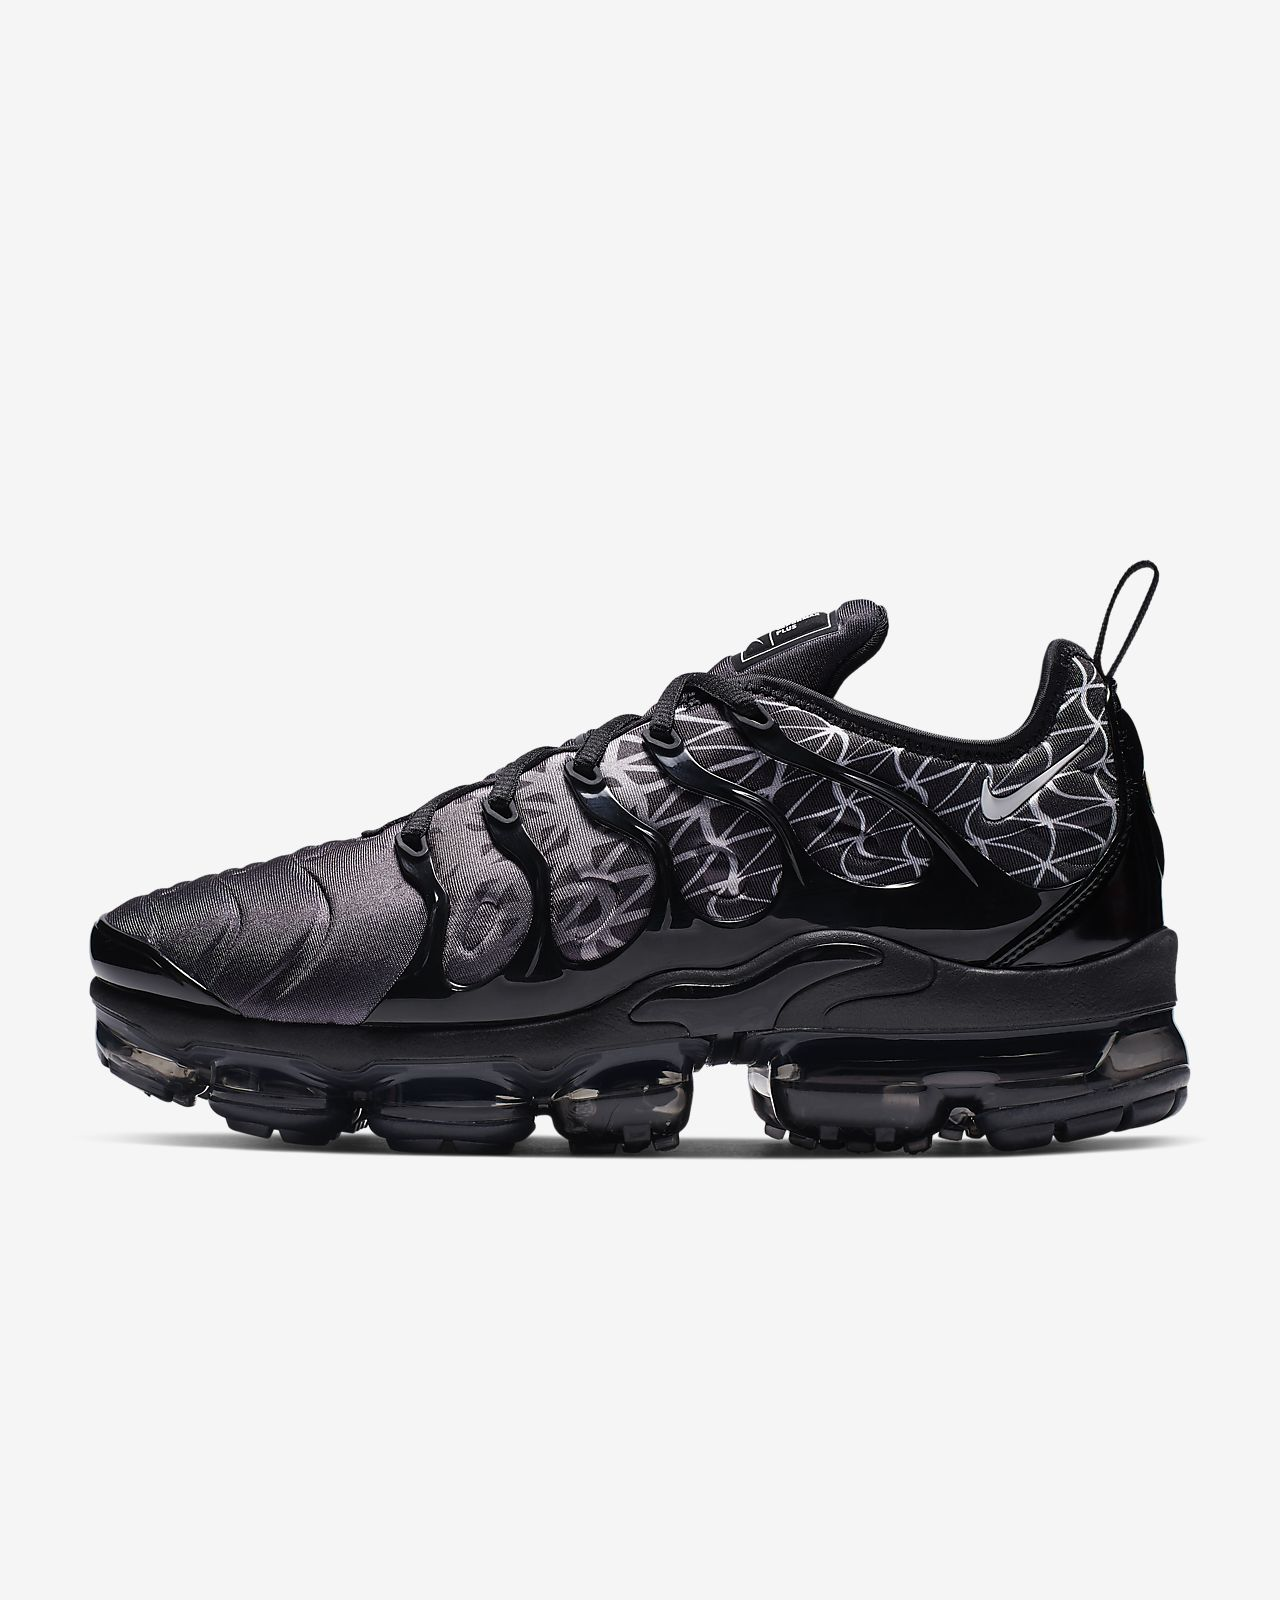 high quality cheap best cool Nike Air Max 96 SE XX Shoes Triple BlackAll Black womens mens running trainers authentic running Sneakers shoes